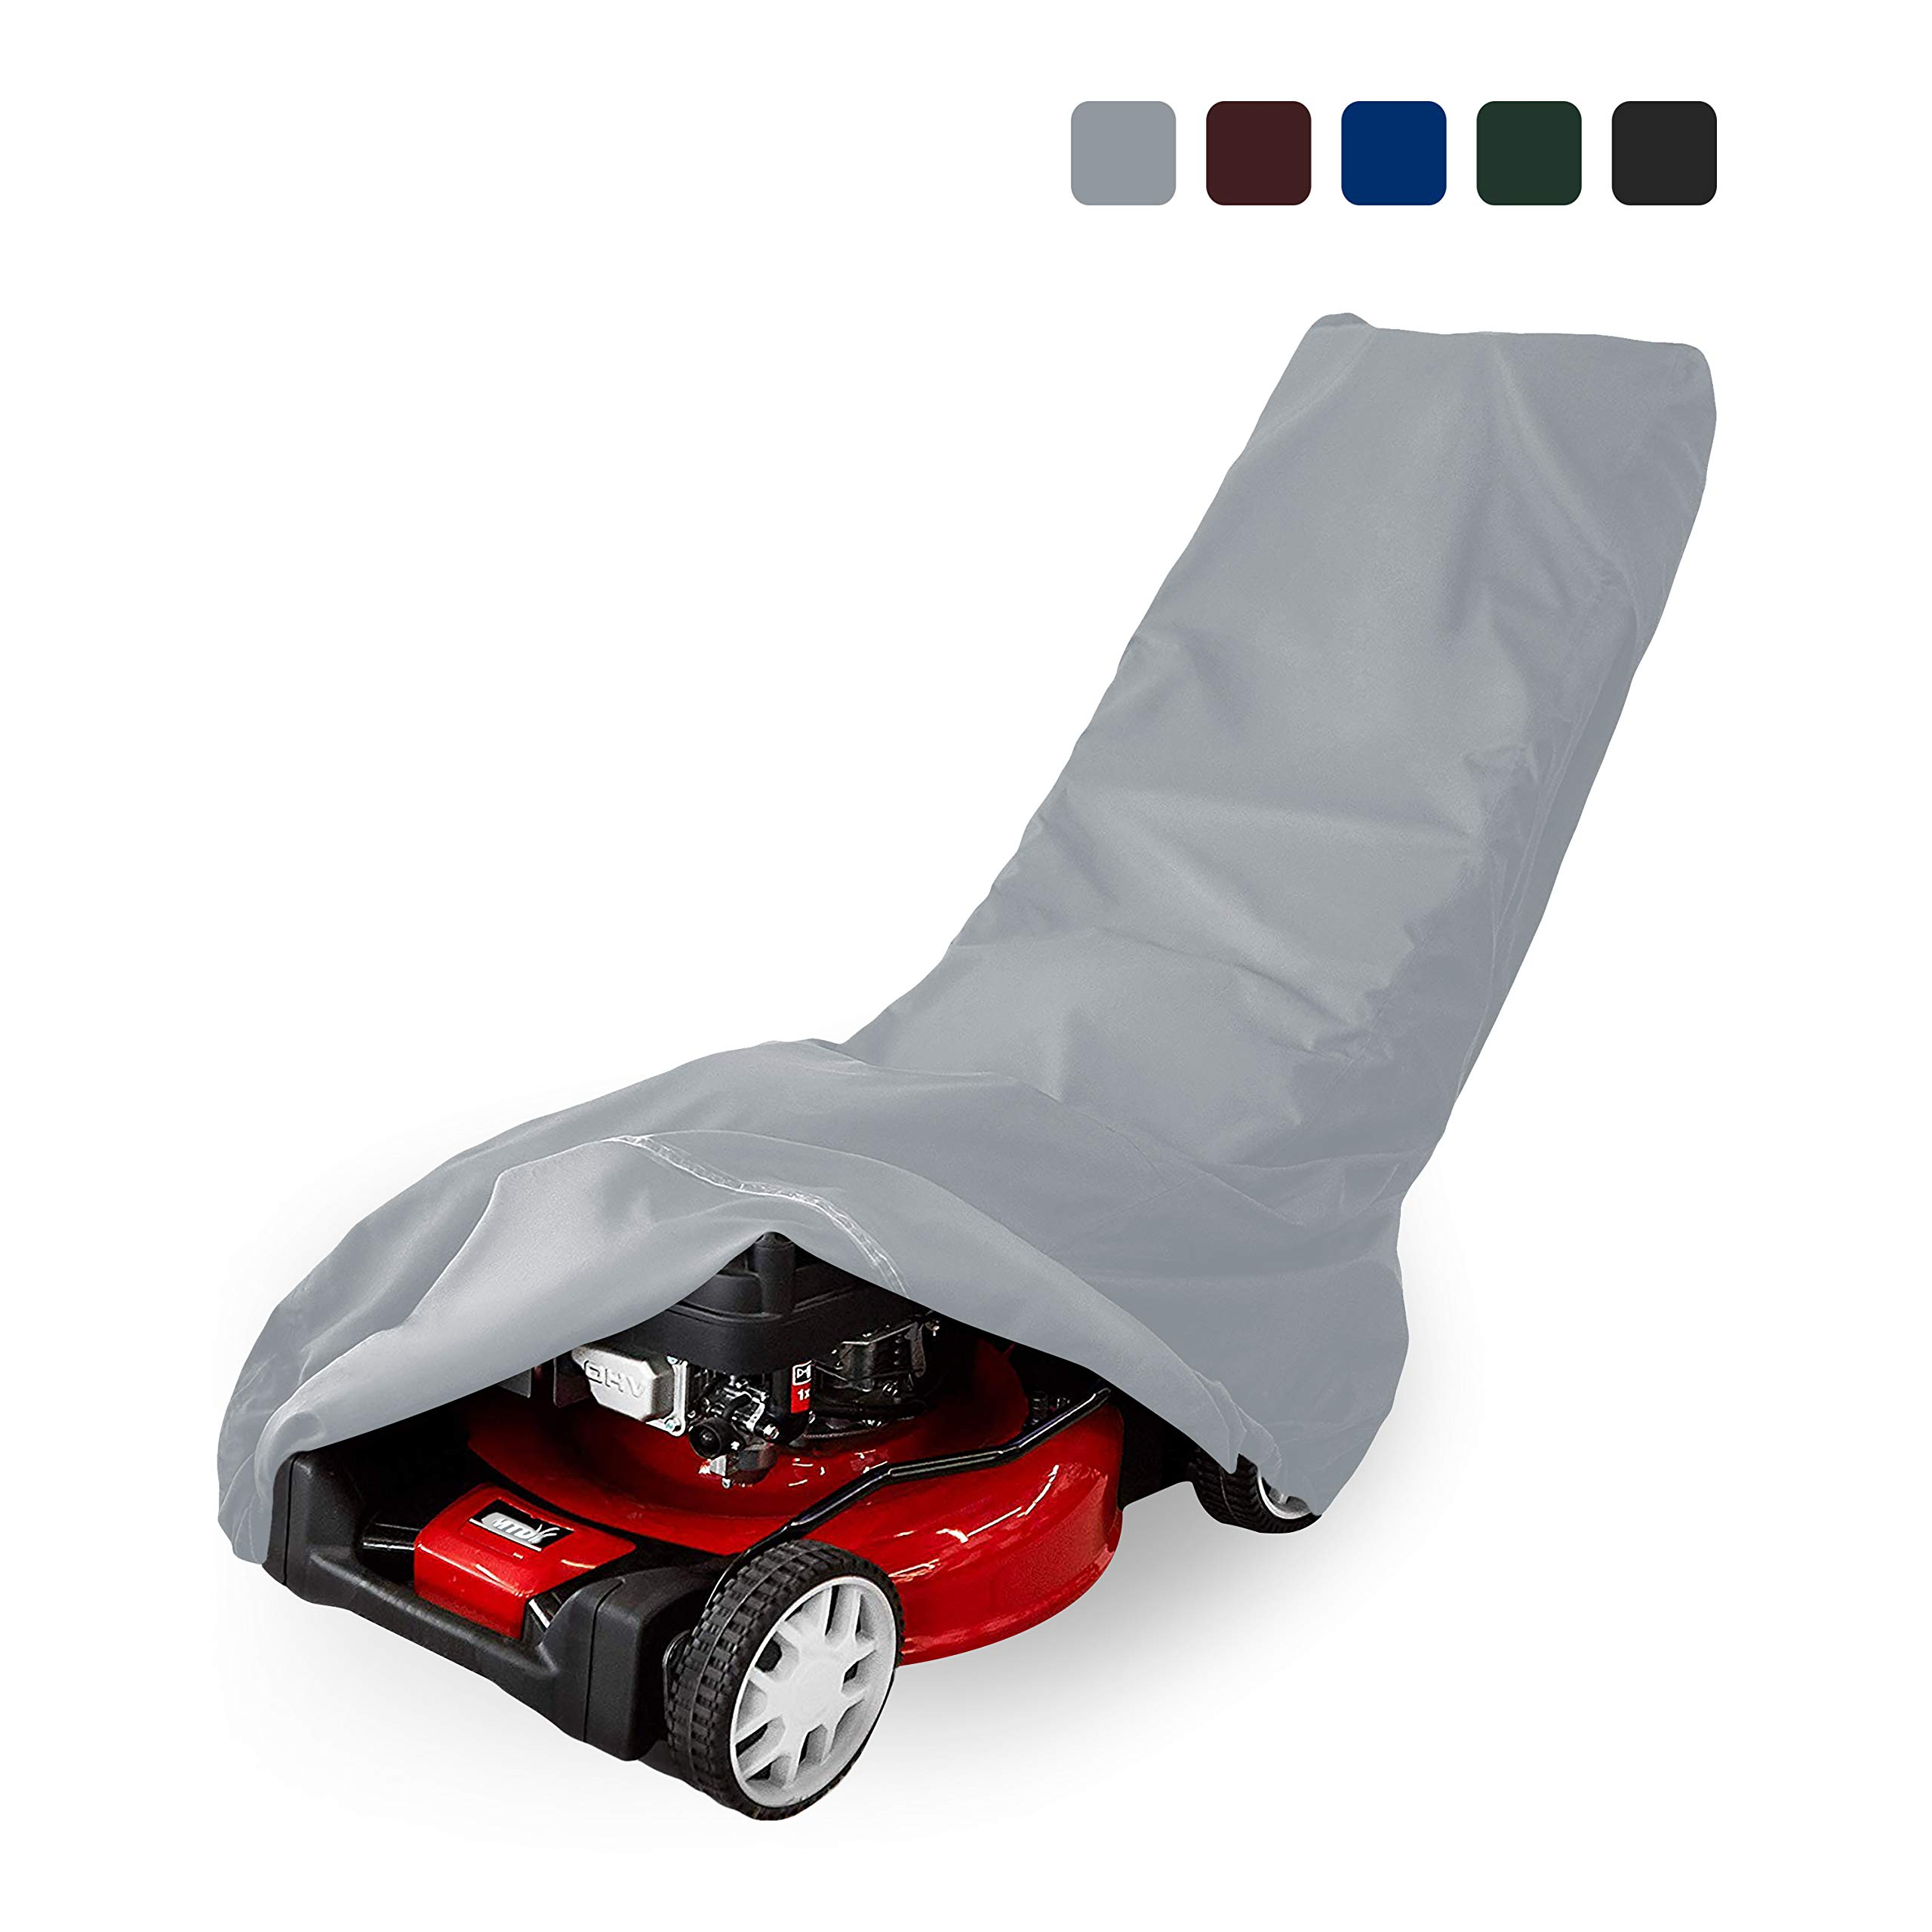 Lawn Mower Cover 18 Oz Waterproof - Customize Cover with Any Size - 100% UV & Weather Resistant Grass Mower Cover with Air Pocket and Drawstring with Snug Fit (50'' W x 25'' W x 44'' H, Grey)